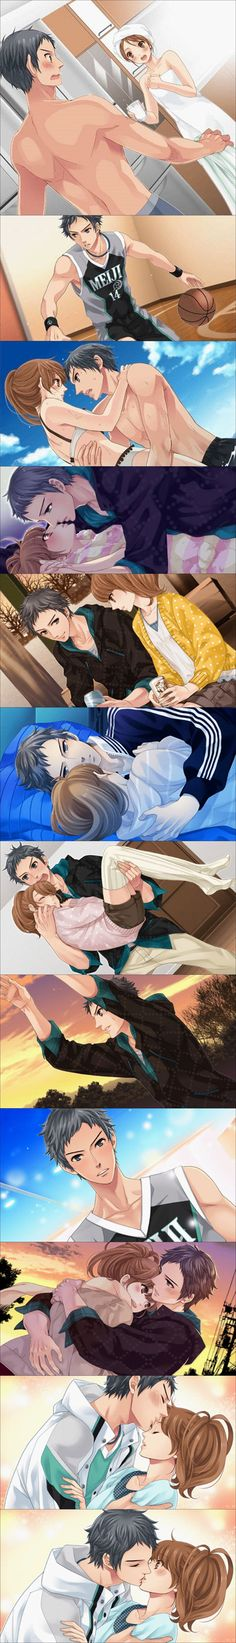 Brothers Conflict - Subaru and Ema